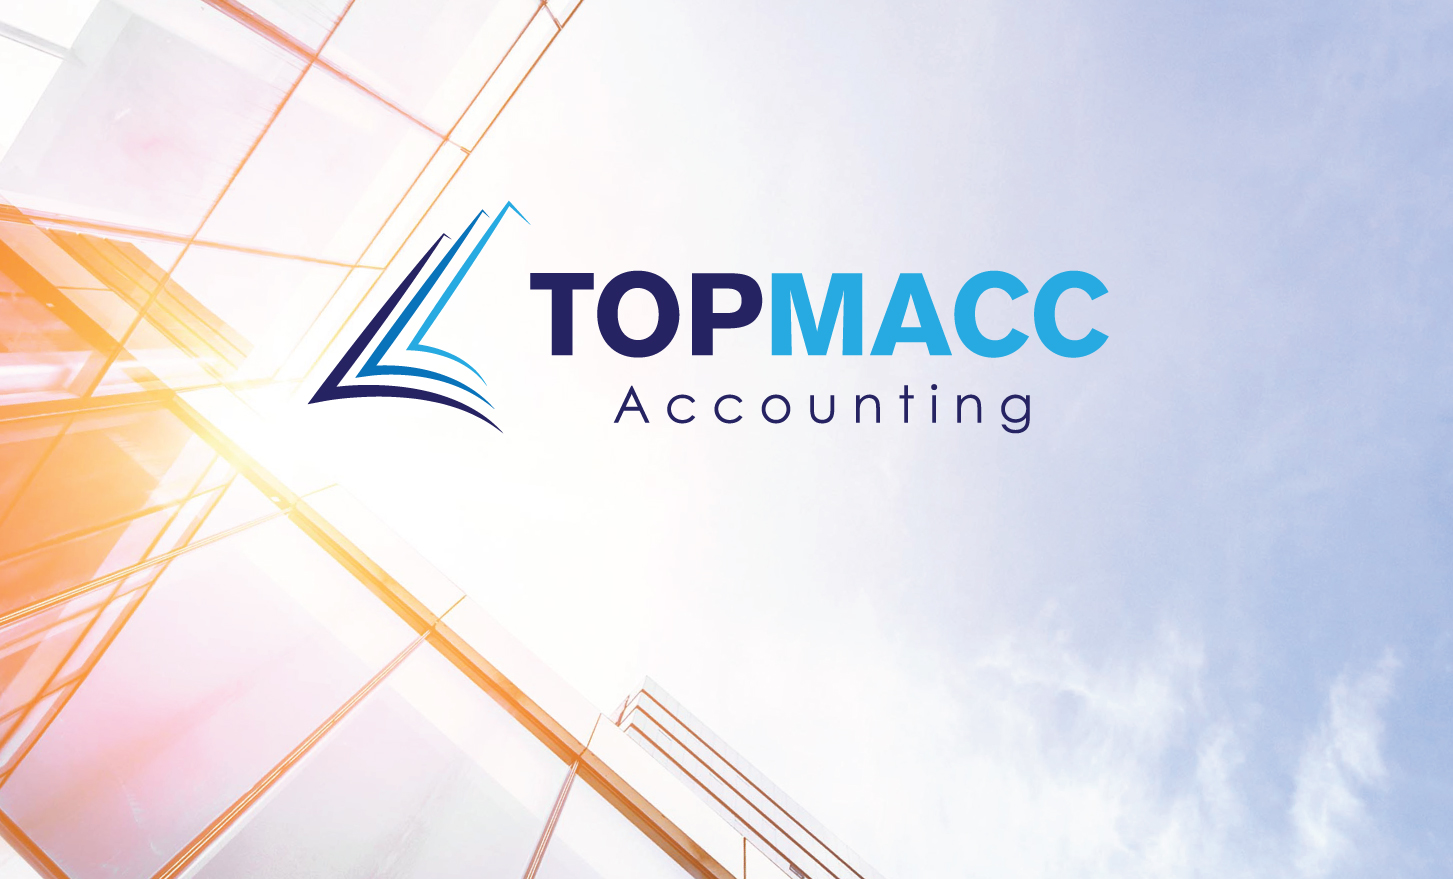 Topmacc-Accounting-home-banner2